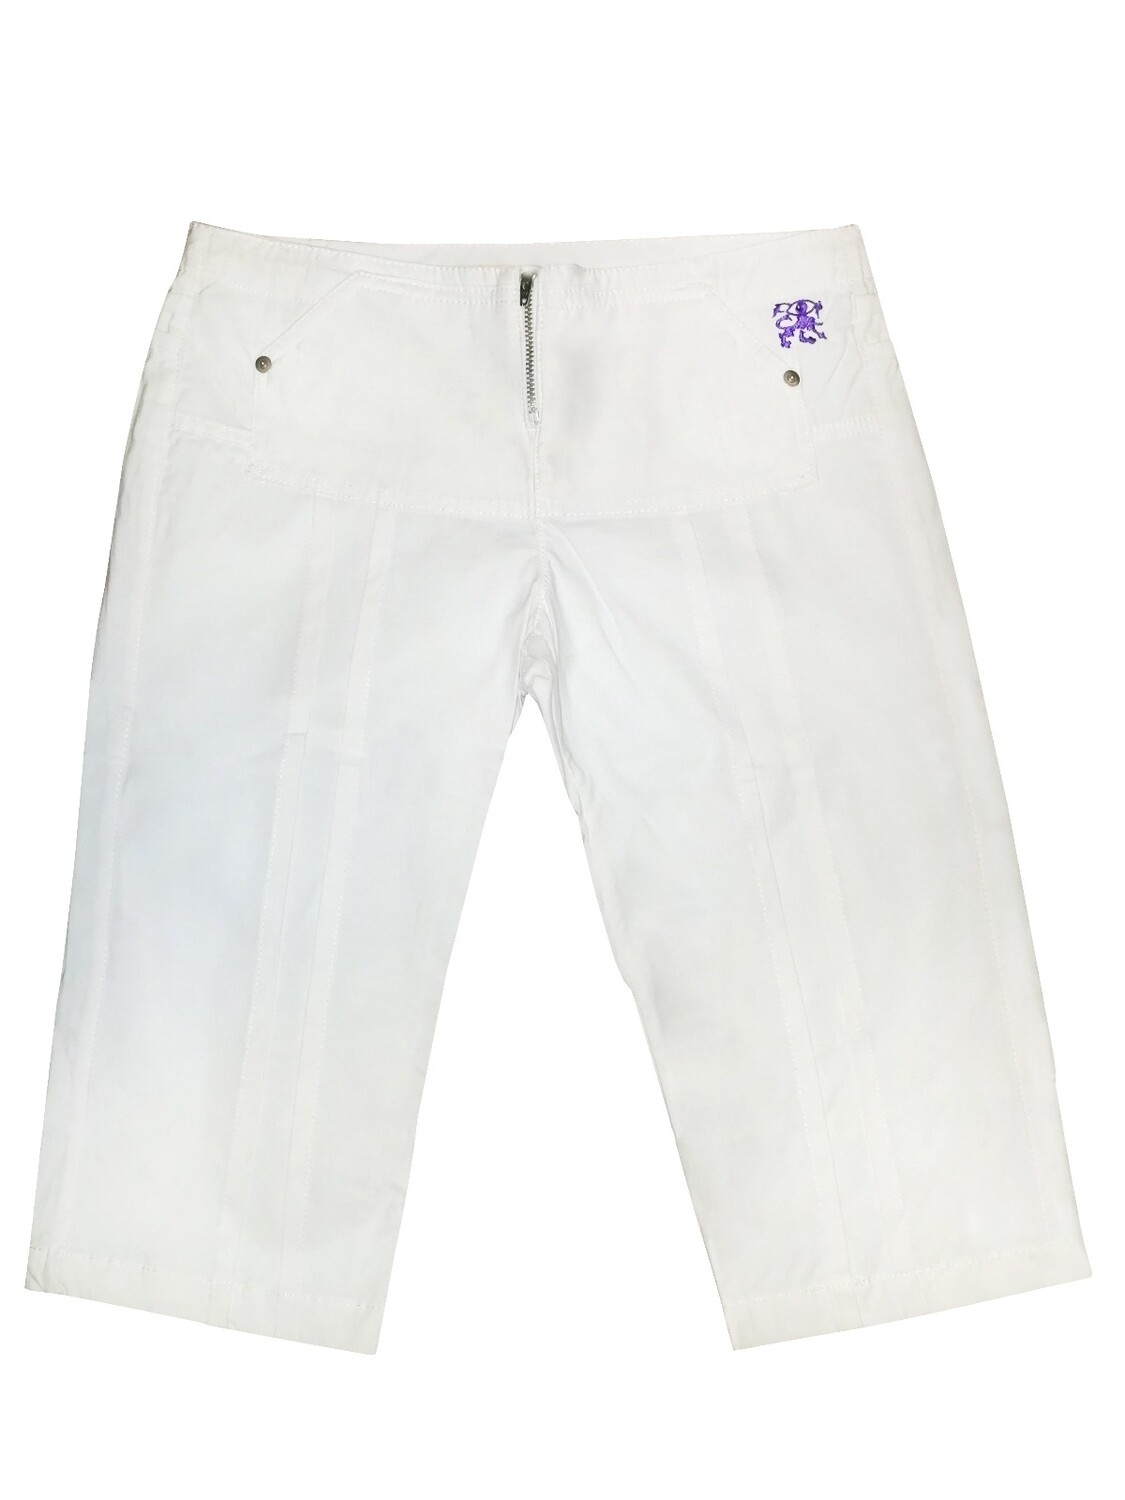 White Indie summer pants